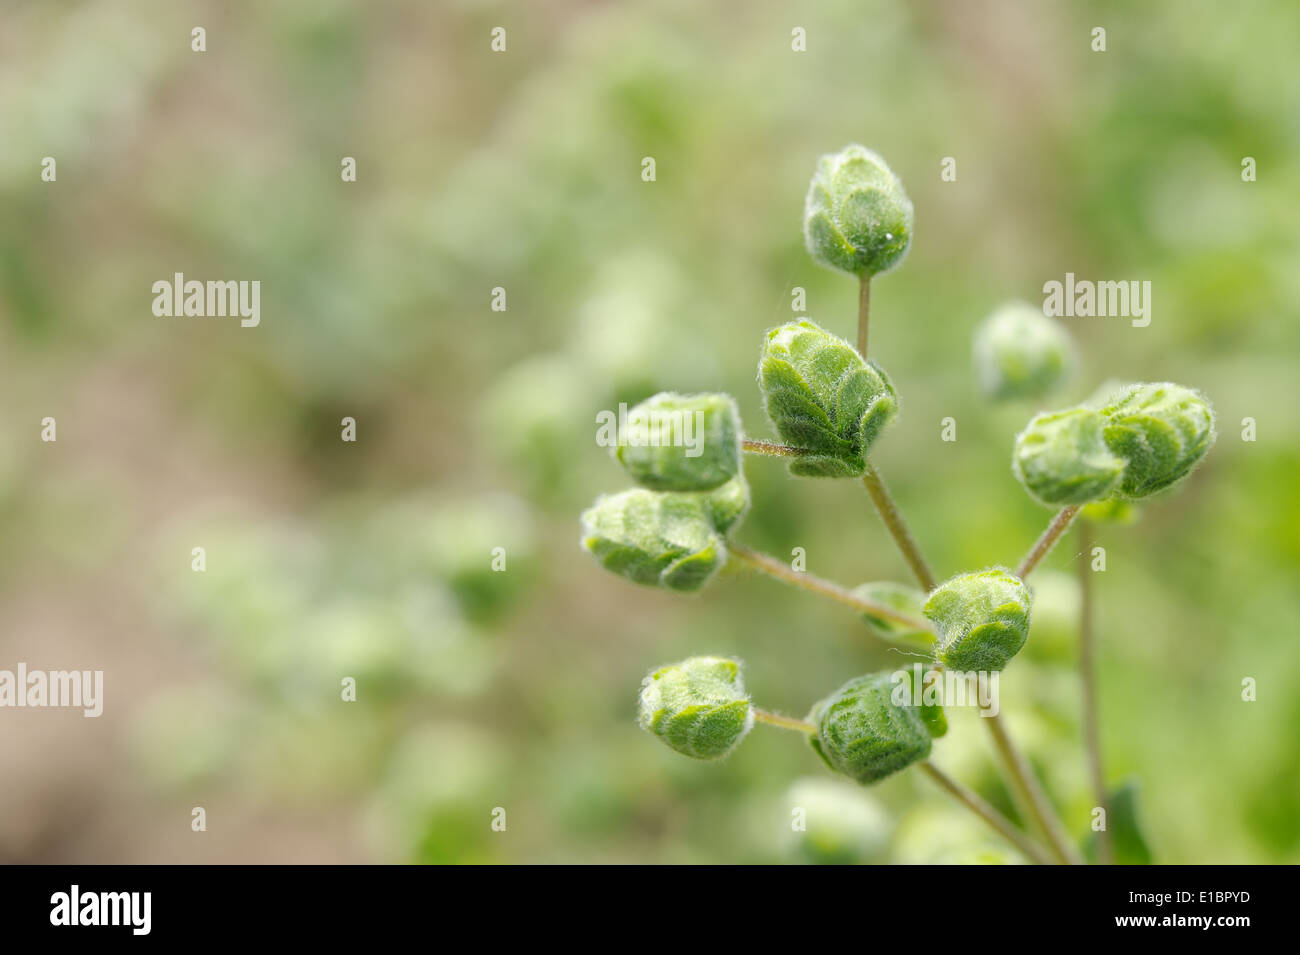 marjoran, top of the Plant, inflorescence close-up - Stock Image